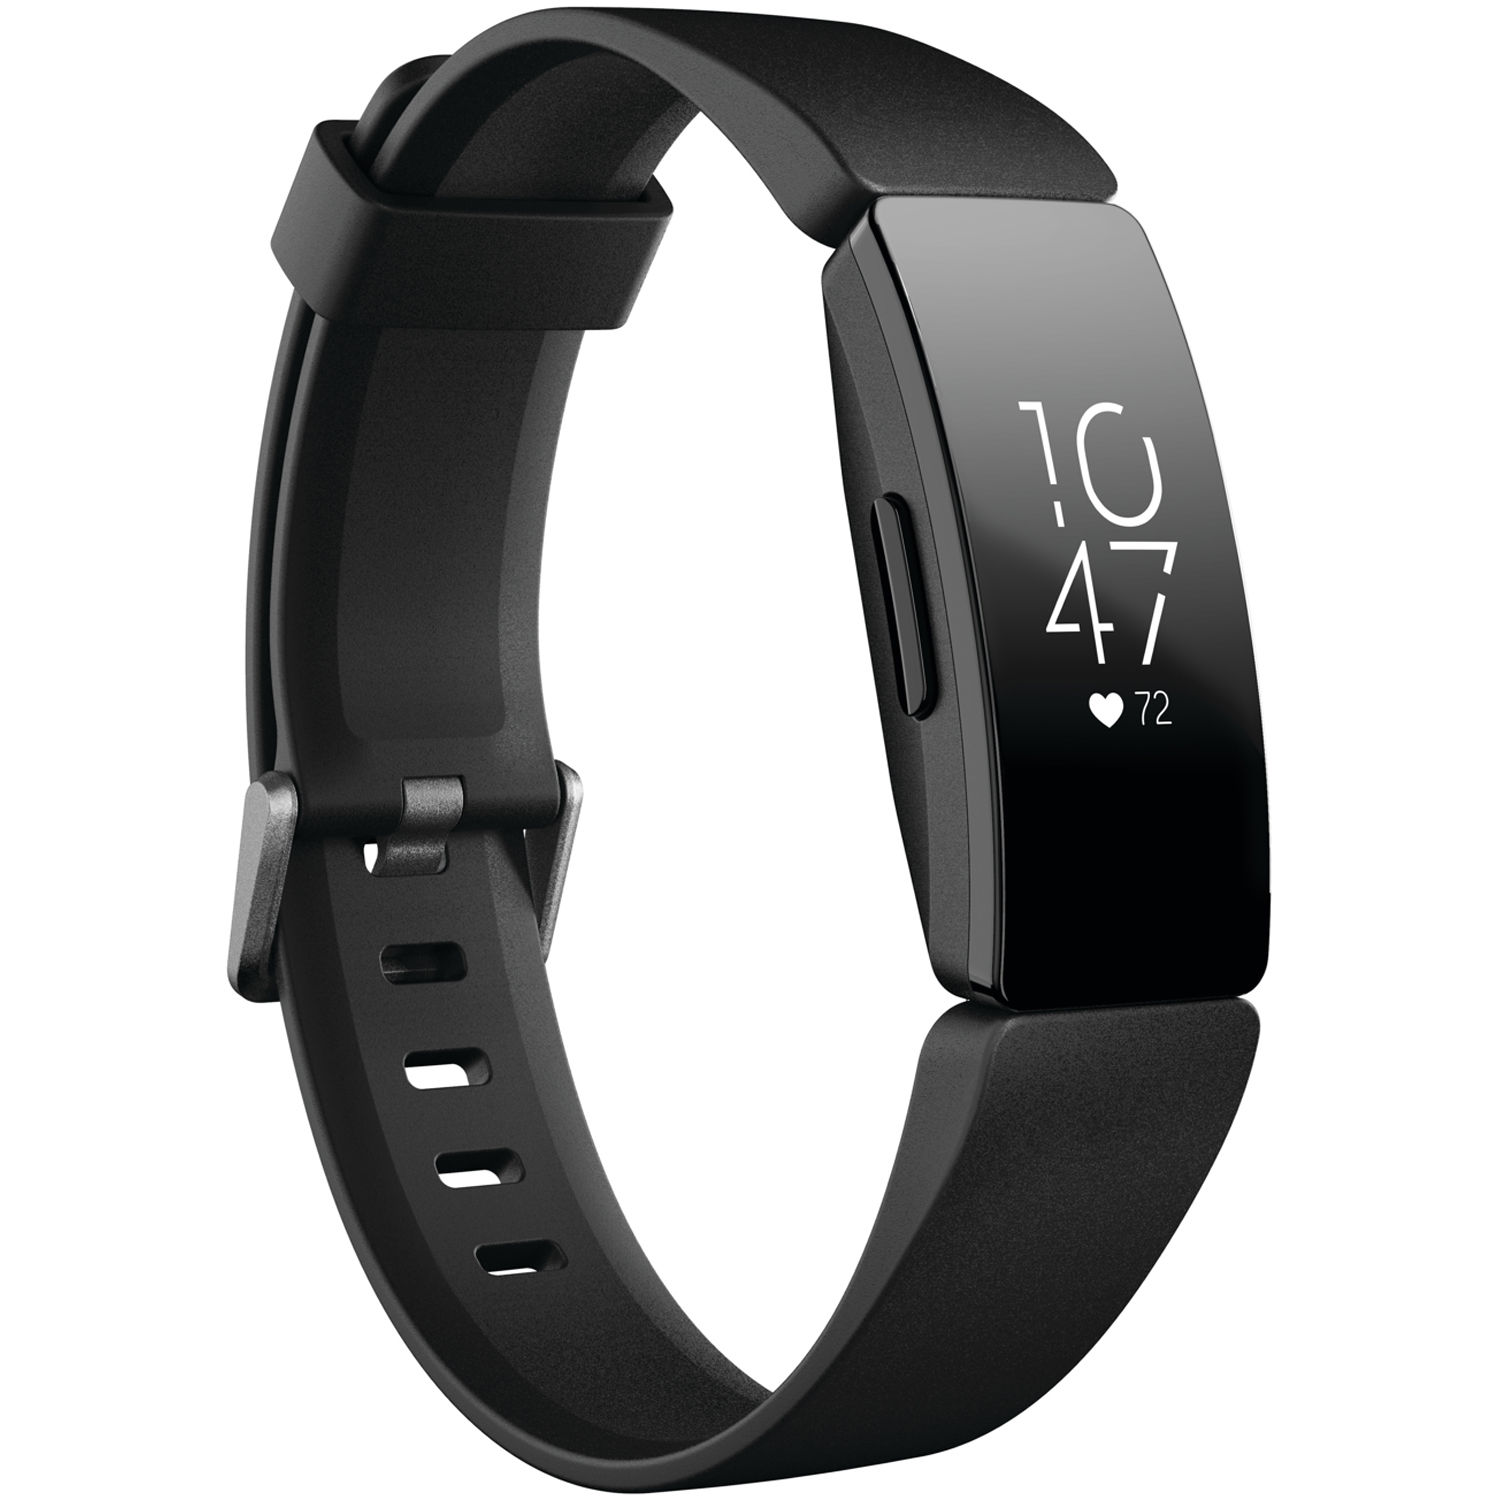 Fitbit Inspire HR Fitness Tracker (Black) FB413BKBK B&H Photo